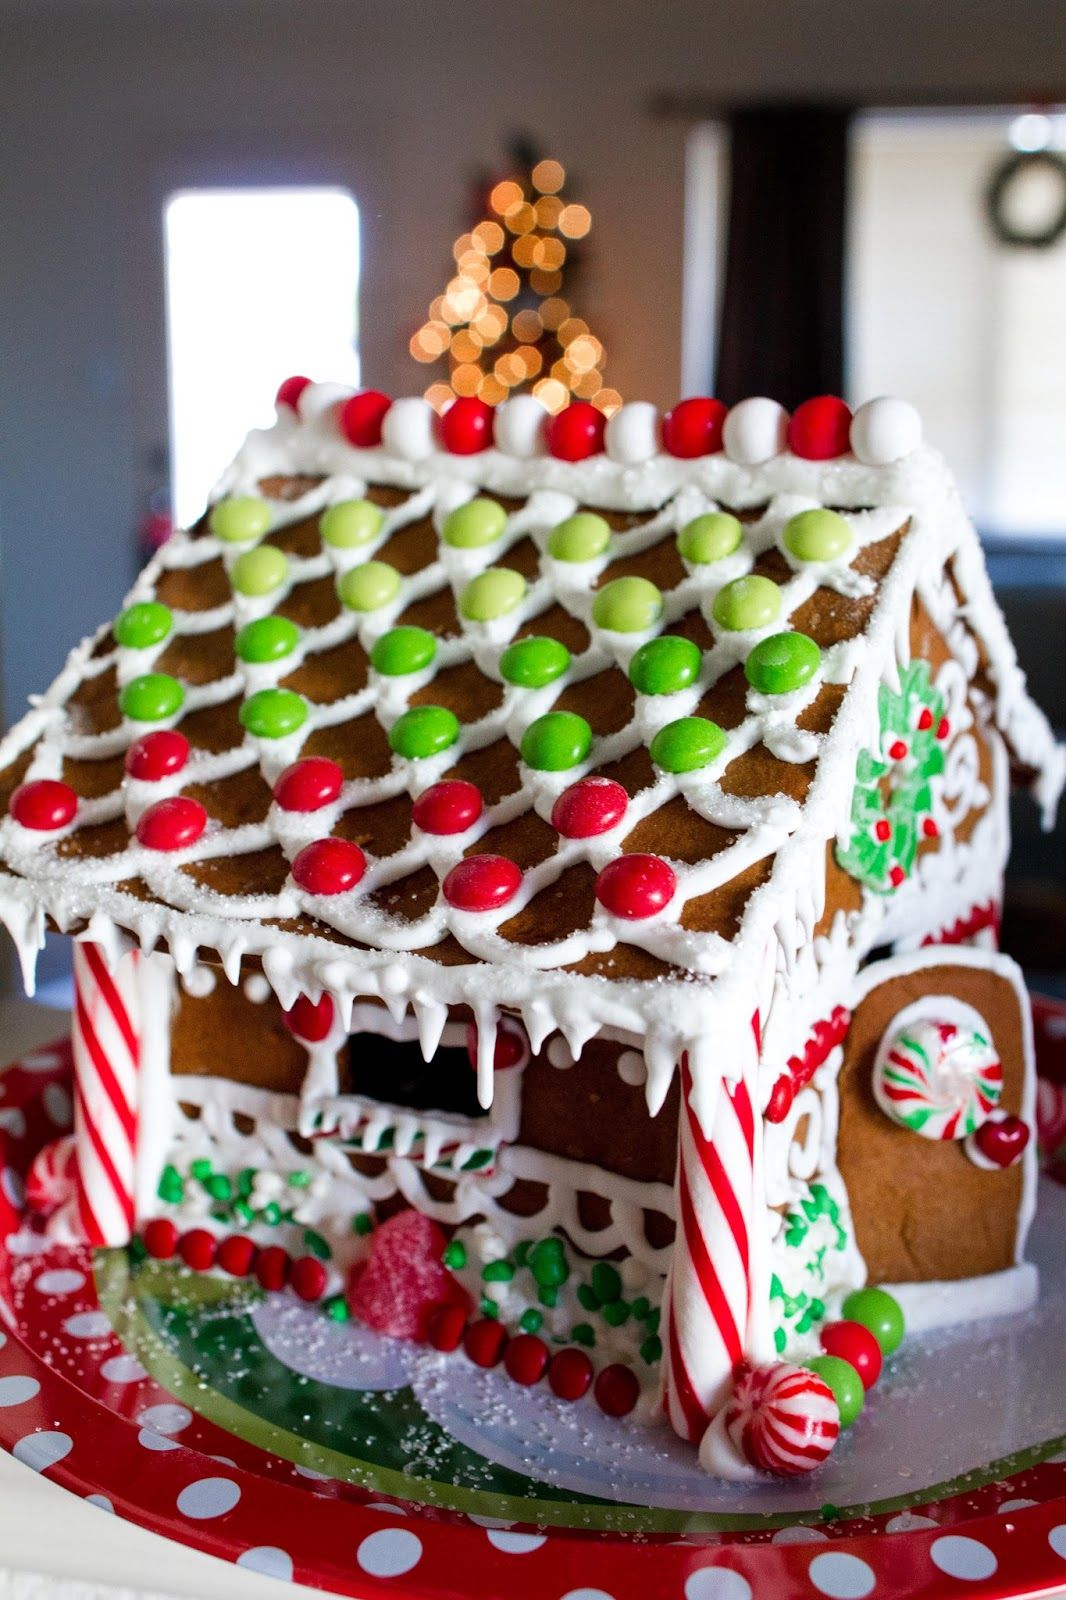 Gingerbread House Ideas Gingerbread House Decorations Christmas